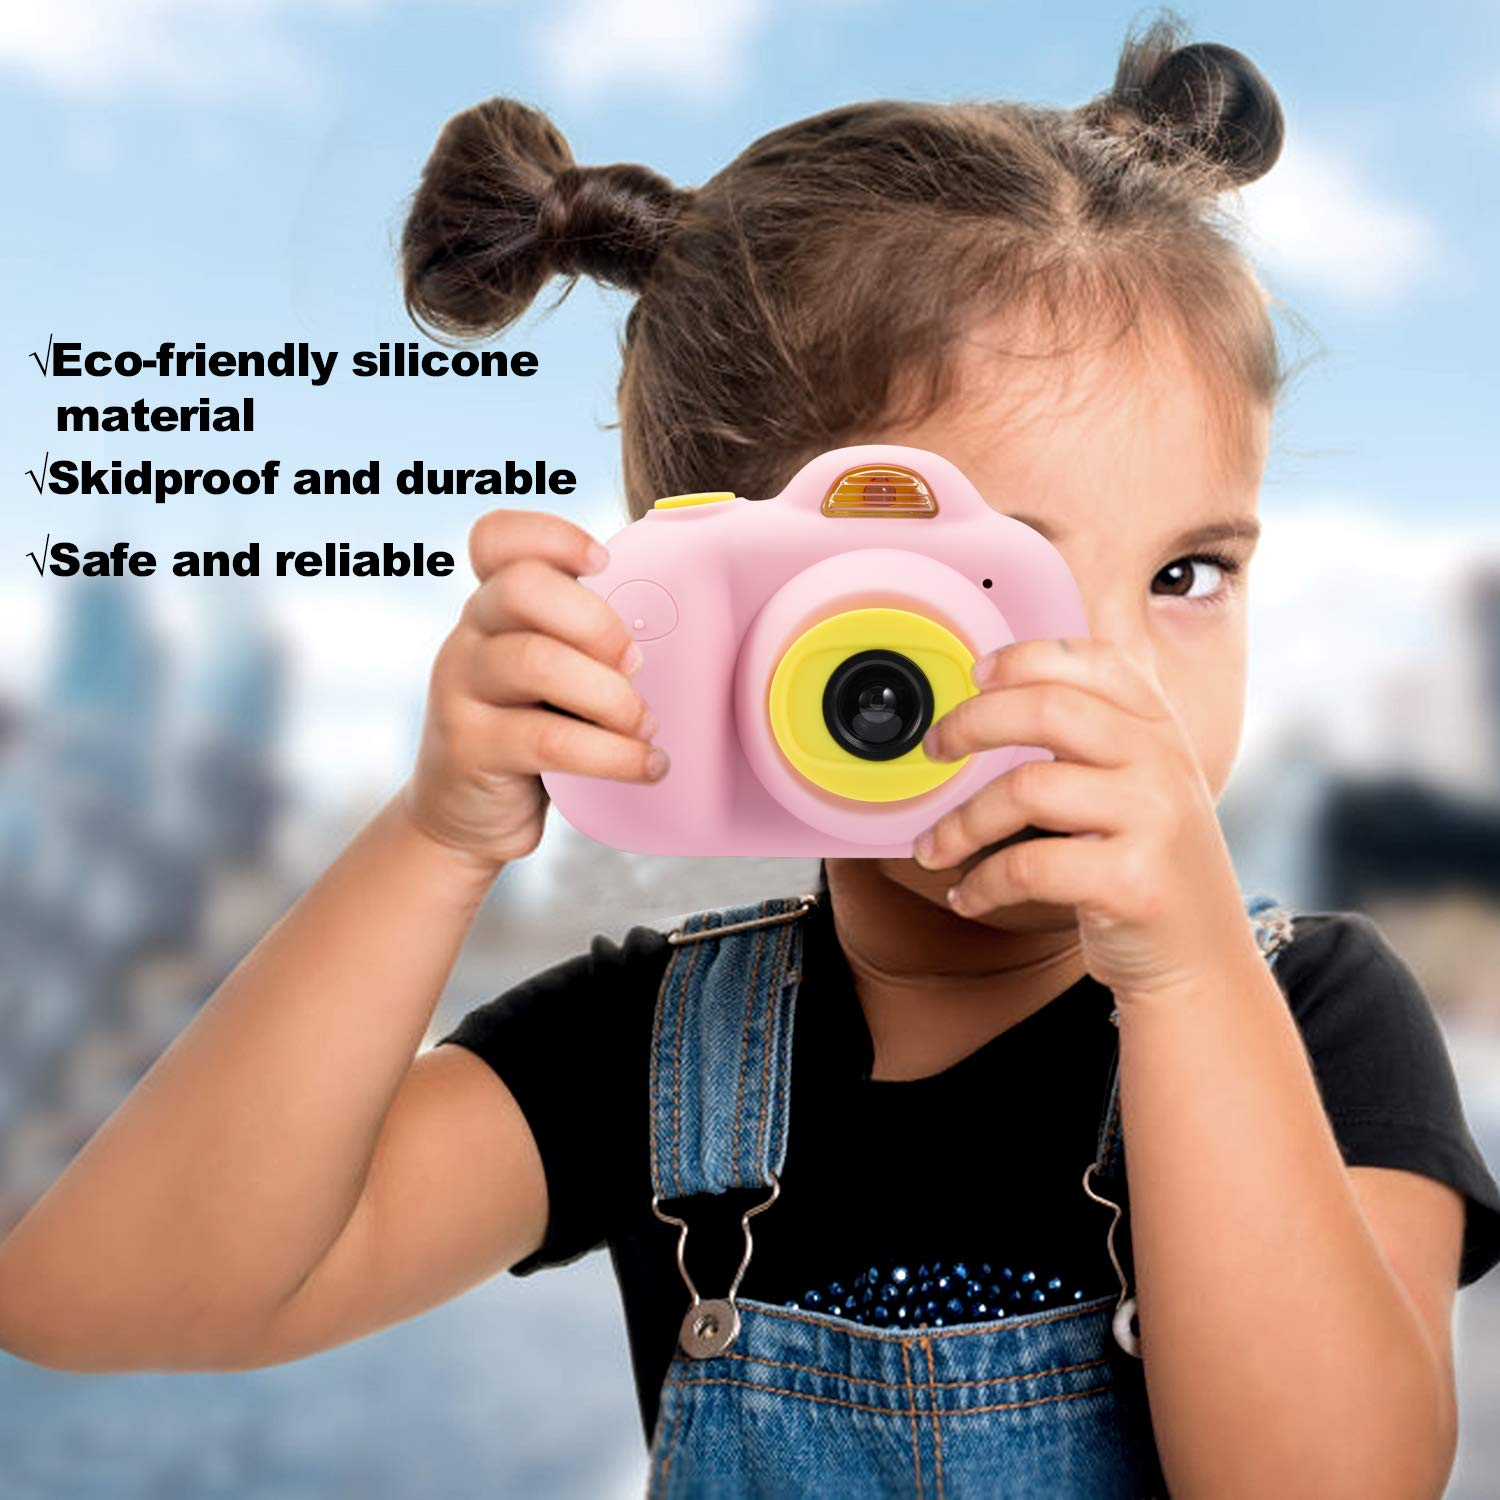 Abdtech Kids Camera Video Cameras Gifts for Girls, Mini Rechargeable Children Shockproof Digital Camcorders Little Girl Toys Gift 8MP with Battery 2 Inch Screen 16GB SD Card ( Pink ) by Abdtech (Image #3)